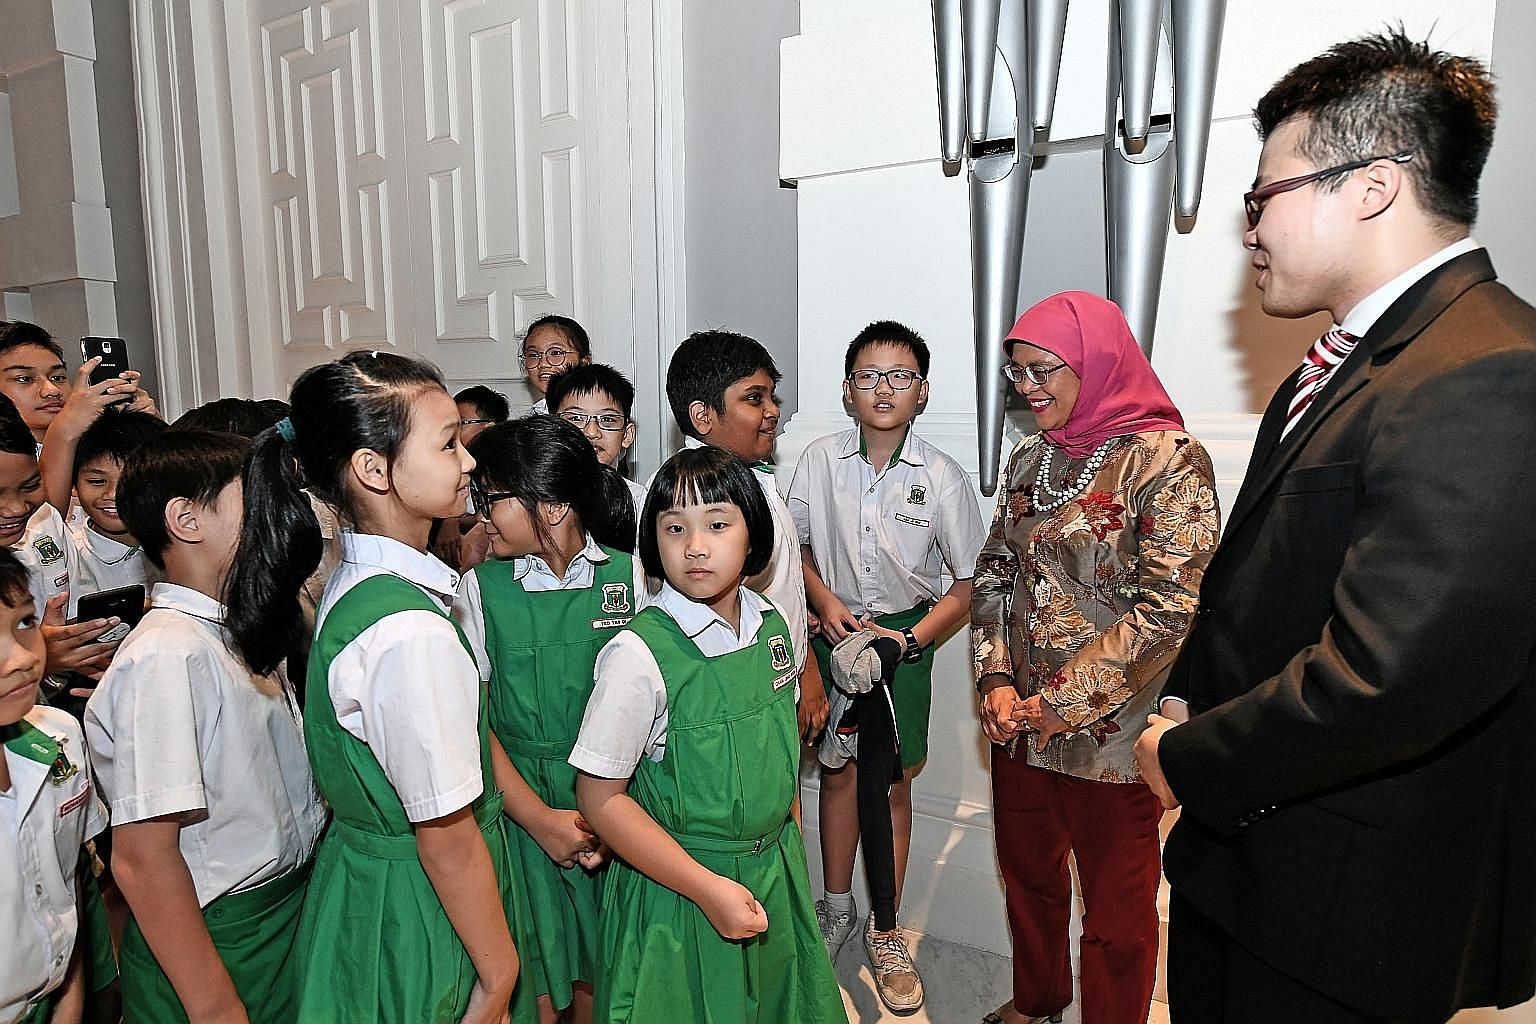 President Halimah Yacob and guitar soloist Kevin Loh meeting Bukit Panjang Primary School pupils at the President's Young Performers concert, held at Victoria Concert Hall in September.